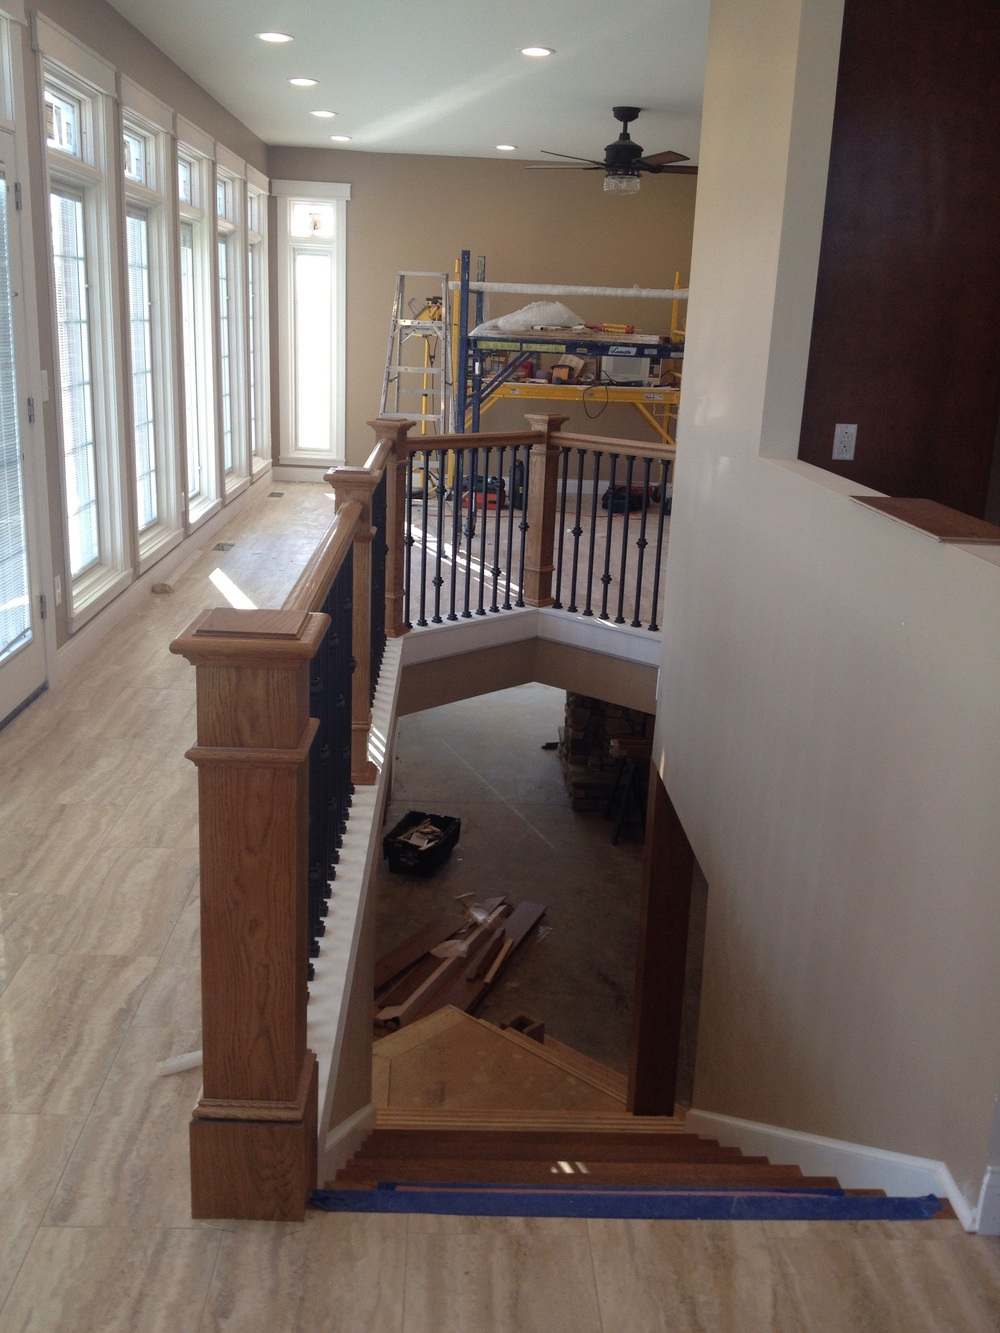 Stairs to the basement between kitchen and sunroom.